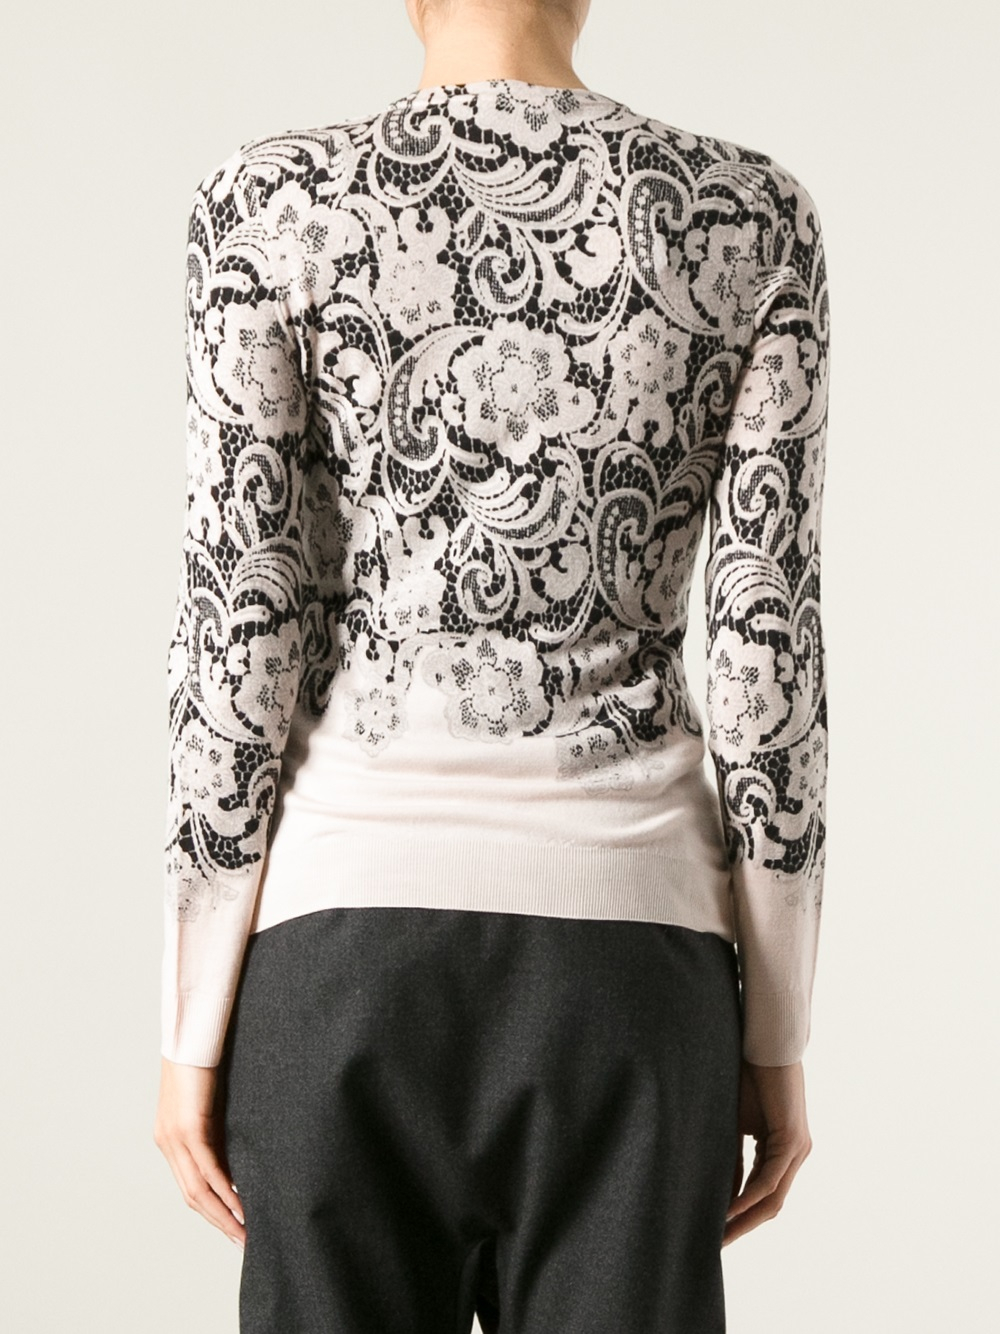 Dolce & gabbana Floral Lace Print Cardigan in Black | Lyst